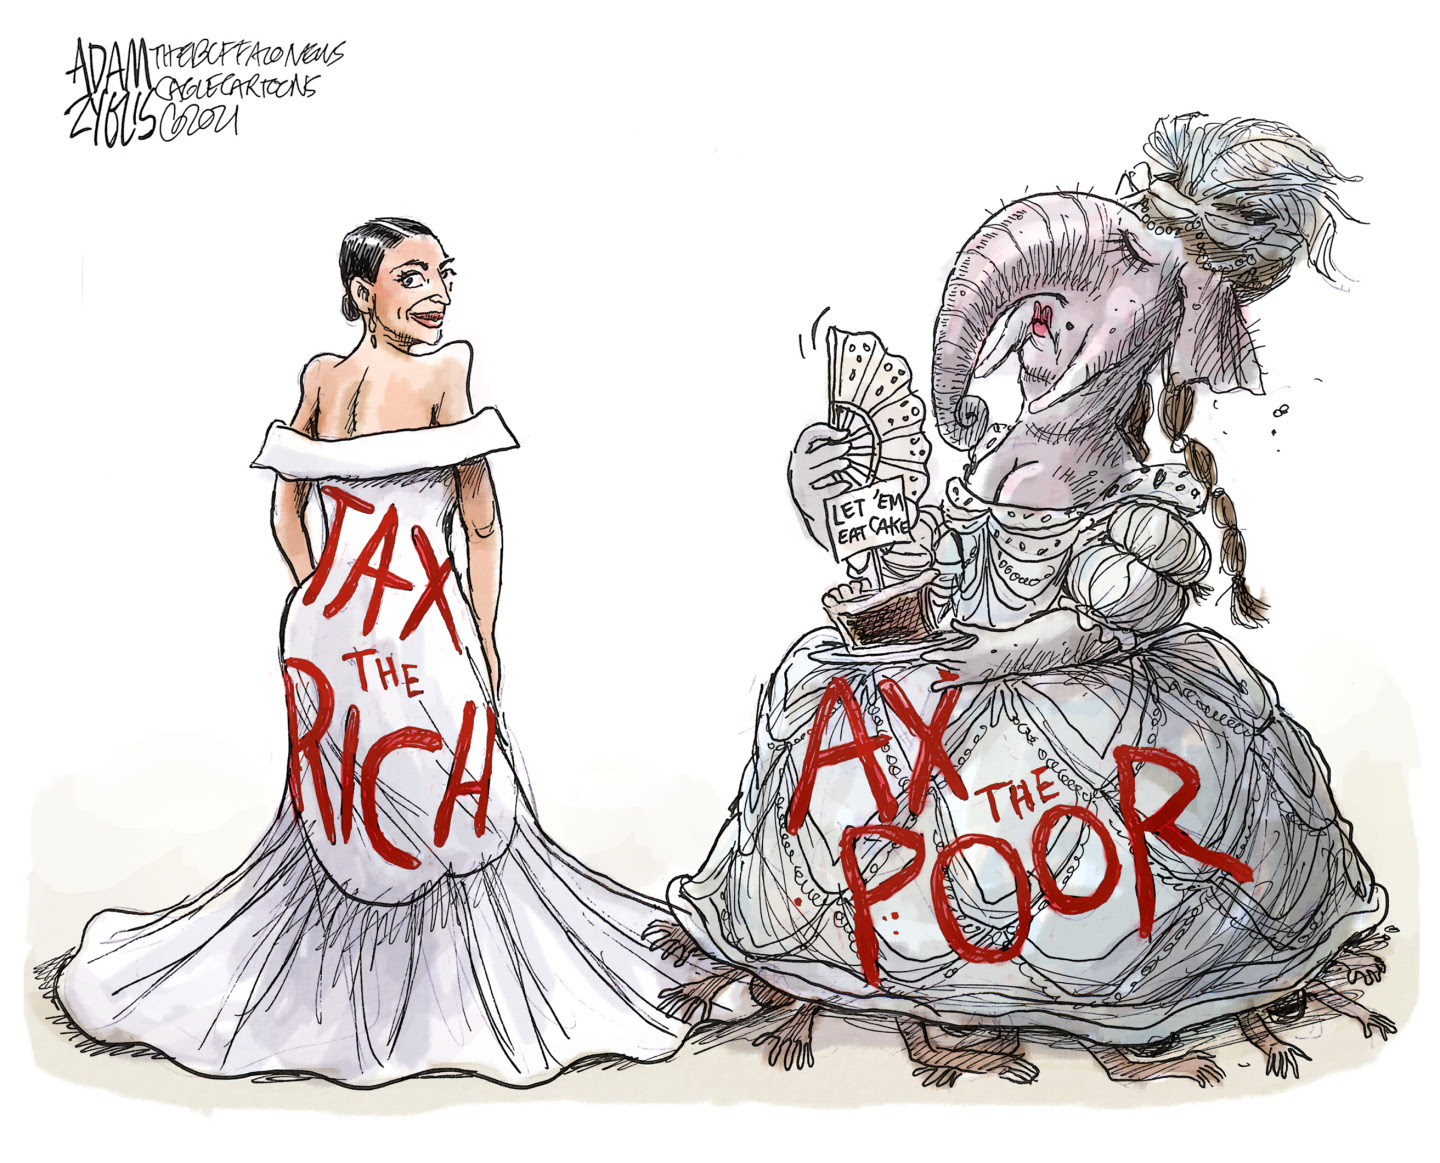 Republicans give tax cuts to the rich while denying other Americans basic benefits.